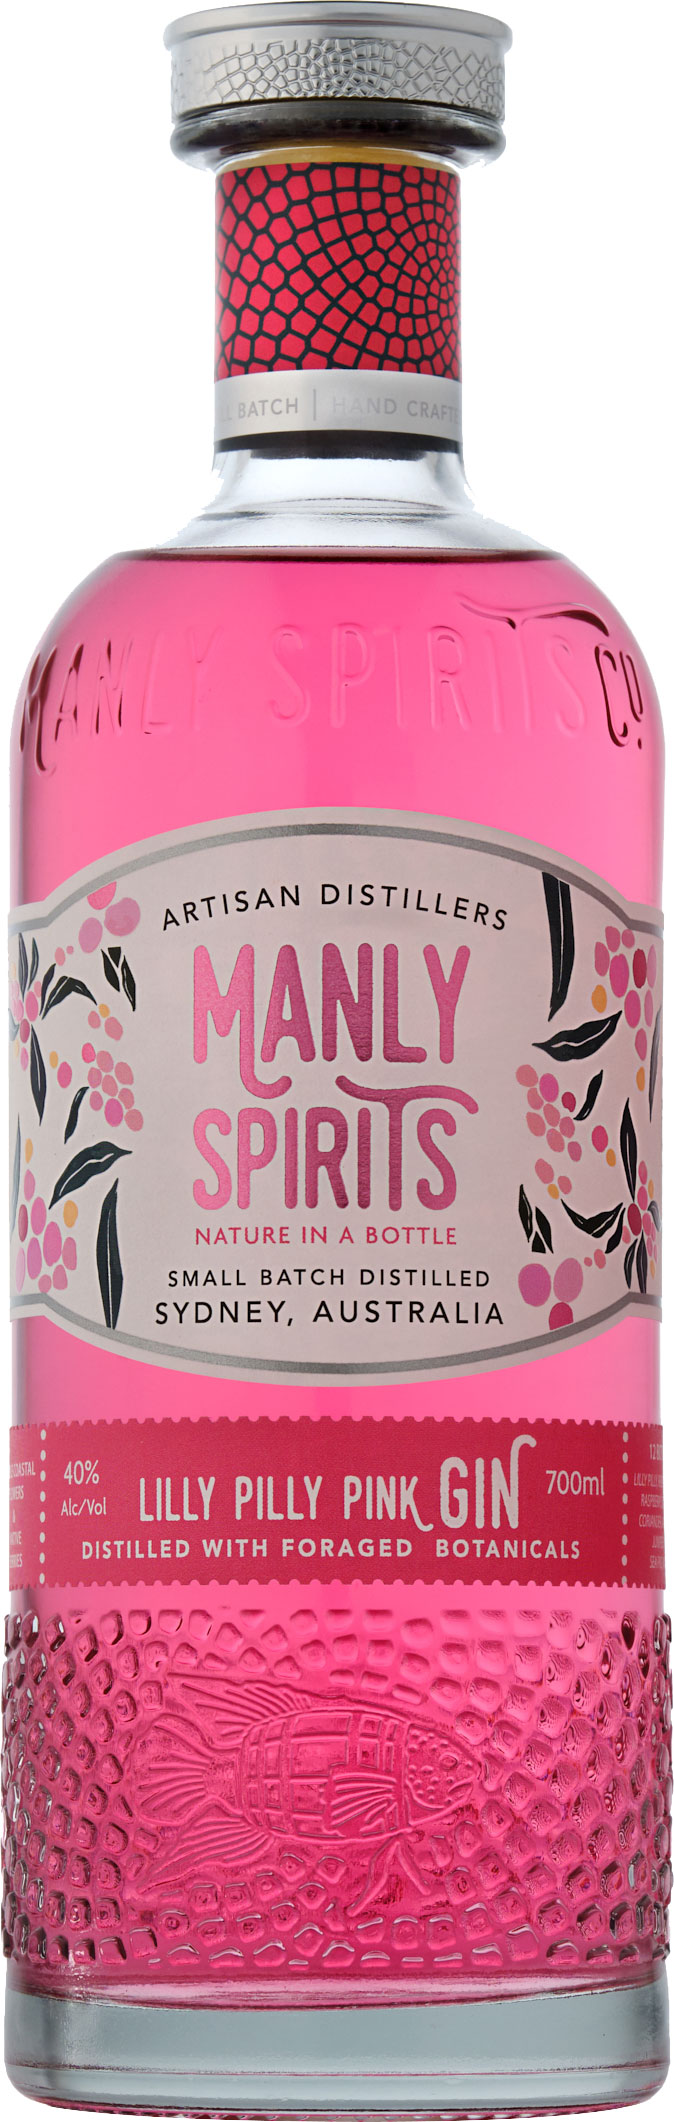 Manly Spirits - Lilly Pilly Pink Gin 70cl Bottle